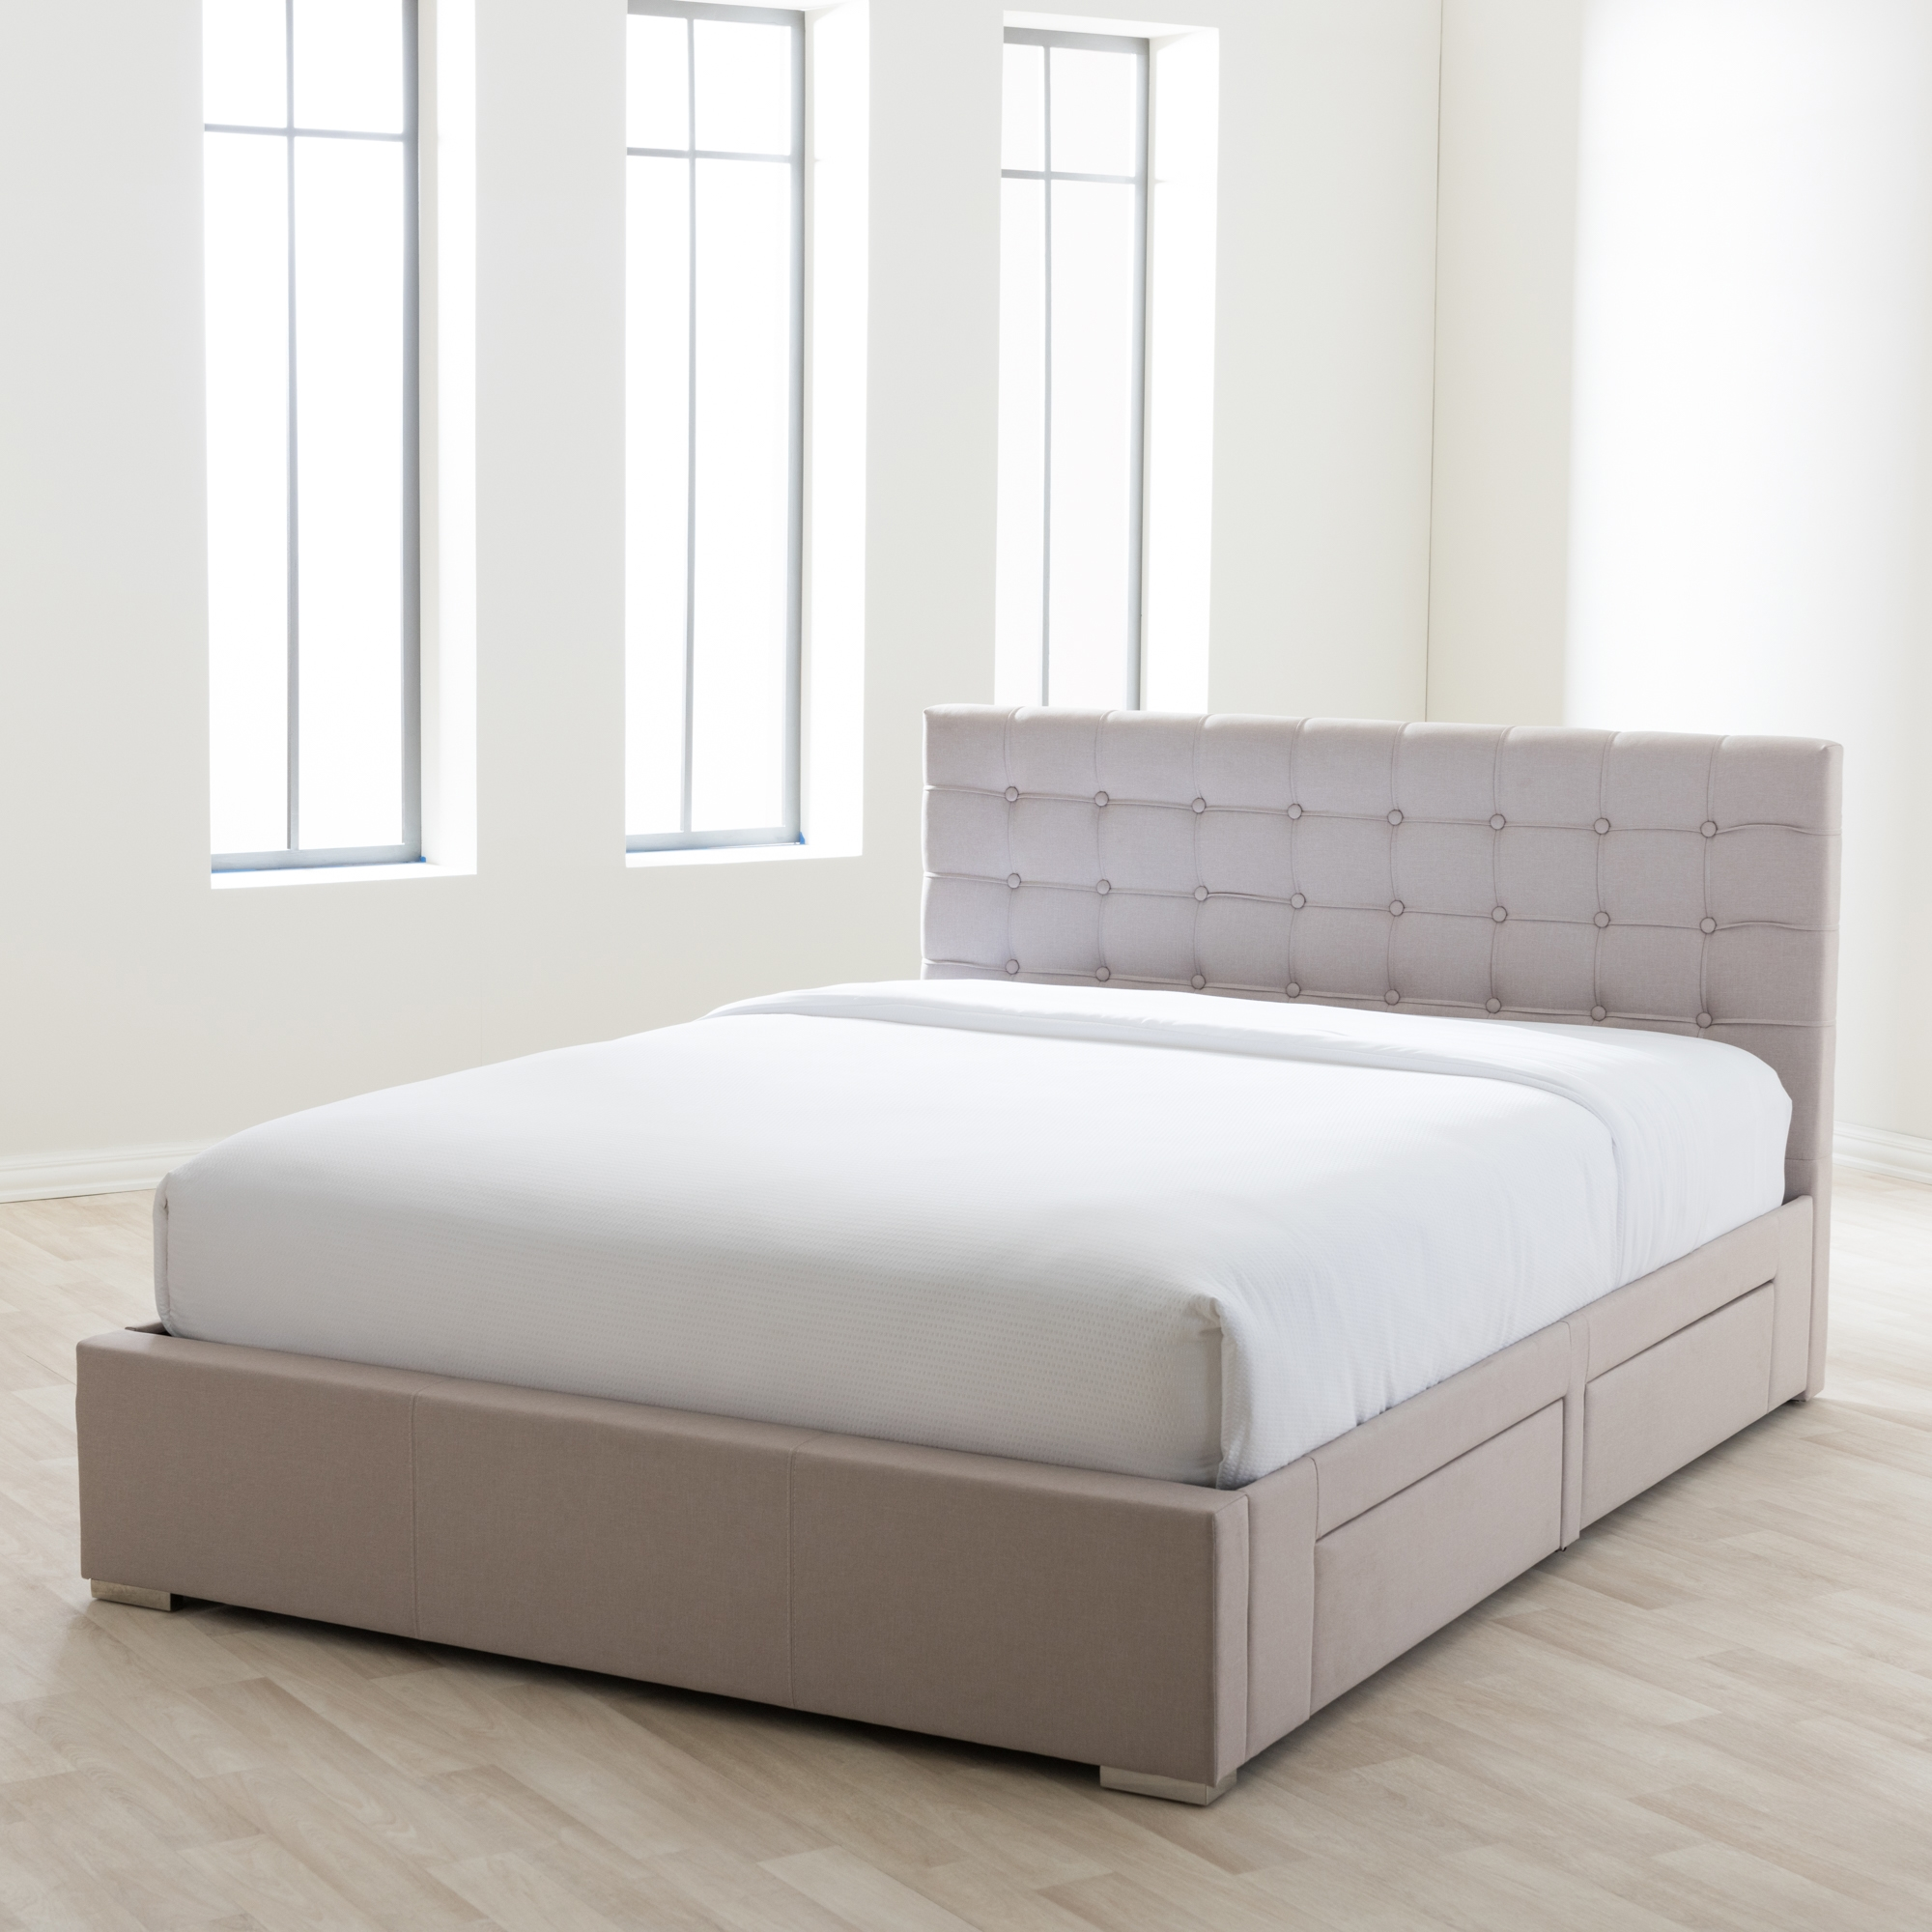 modern storage beds baxton studio rene modern and contemporary beige fabric 4 12627